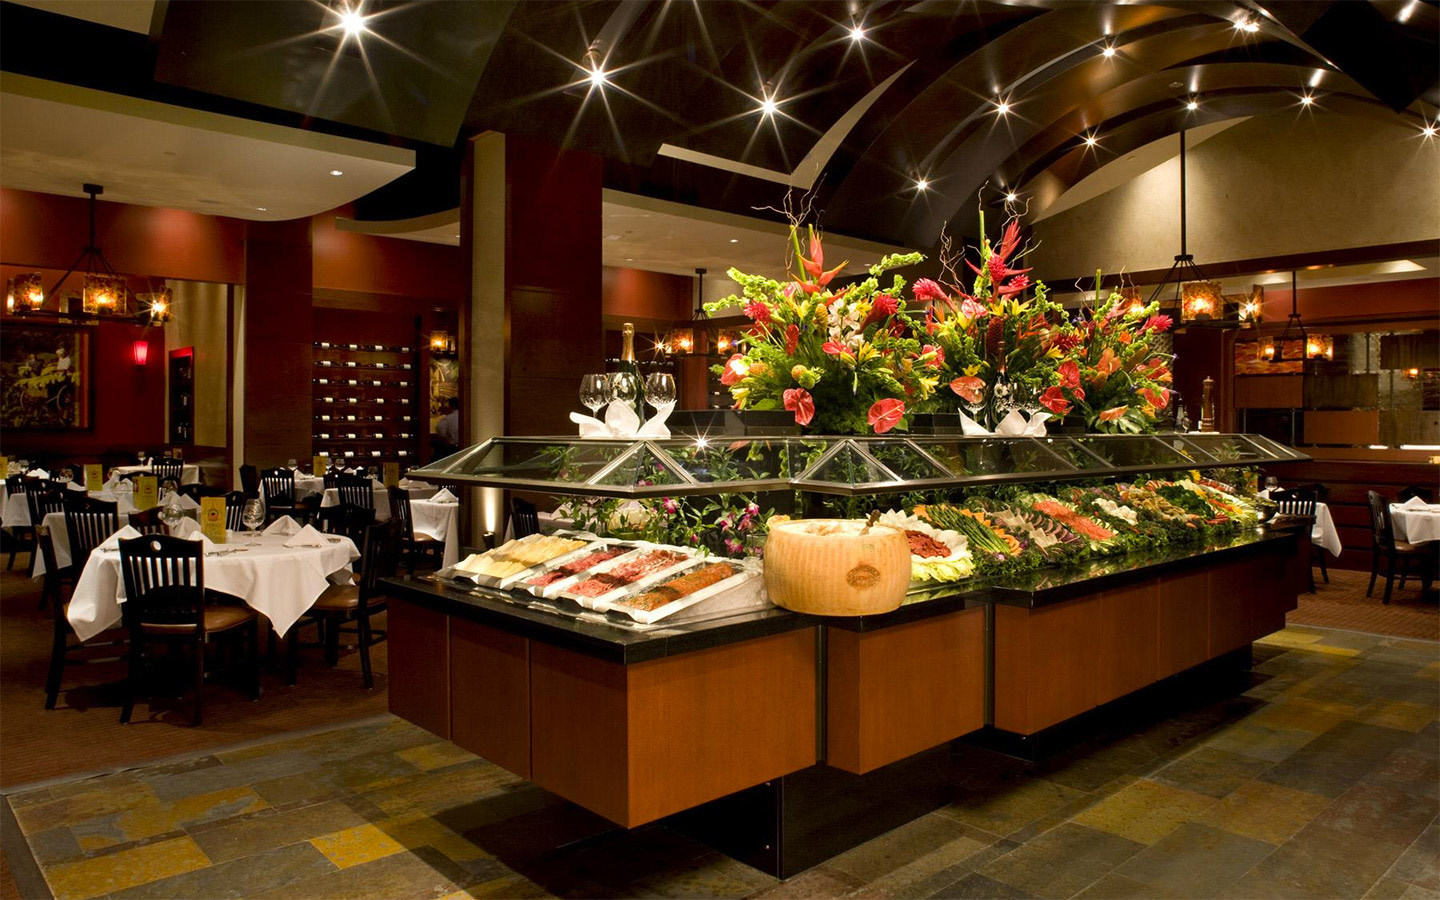 Fogo de Chao Salad Bar with 40+ items